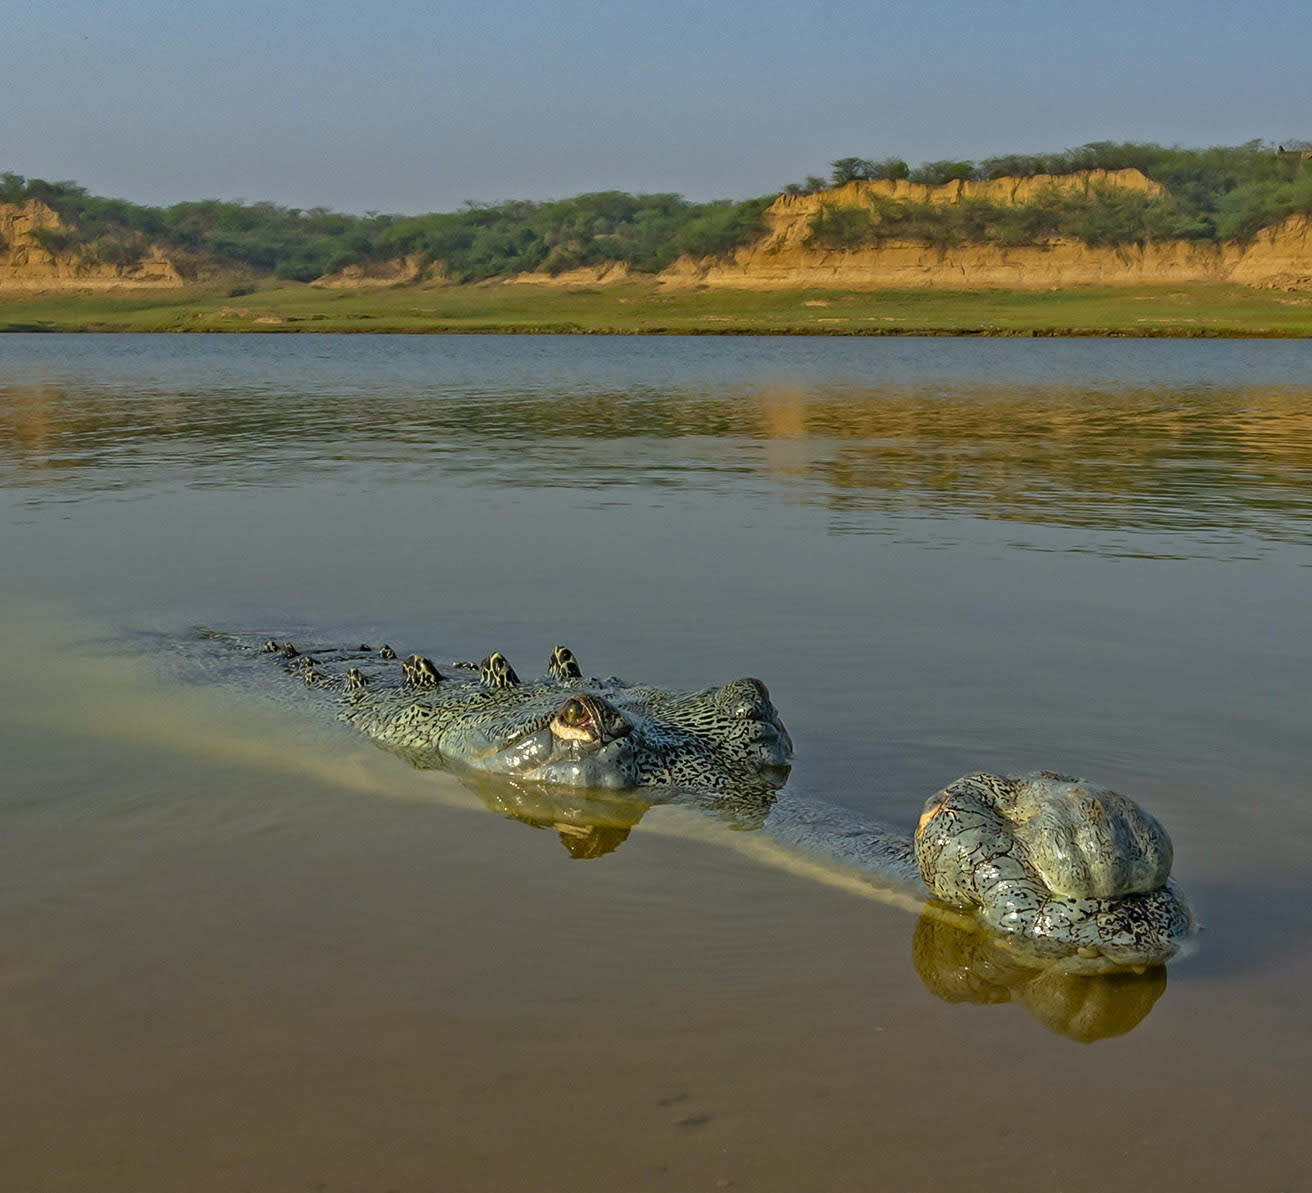 Gaping Gharials: River Reptile with the Super Snout